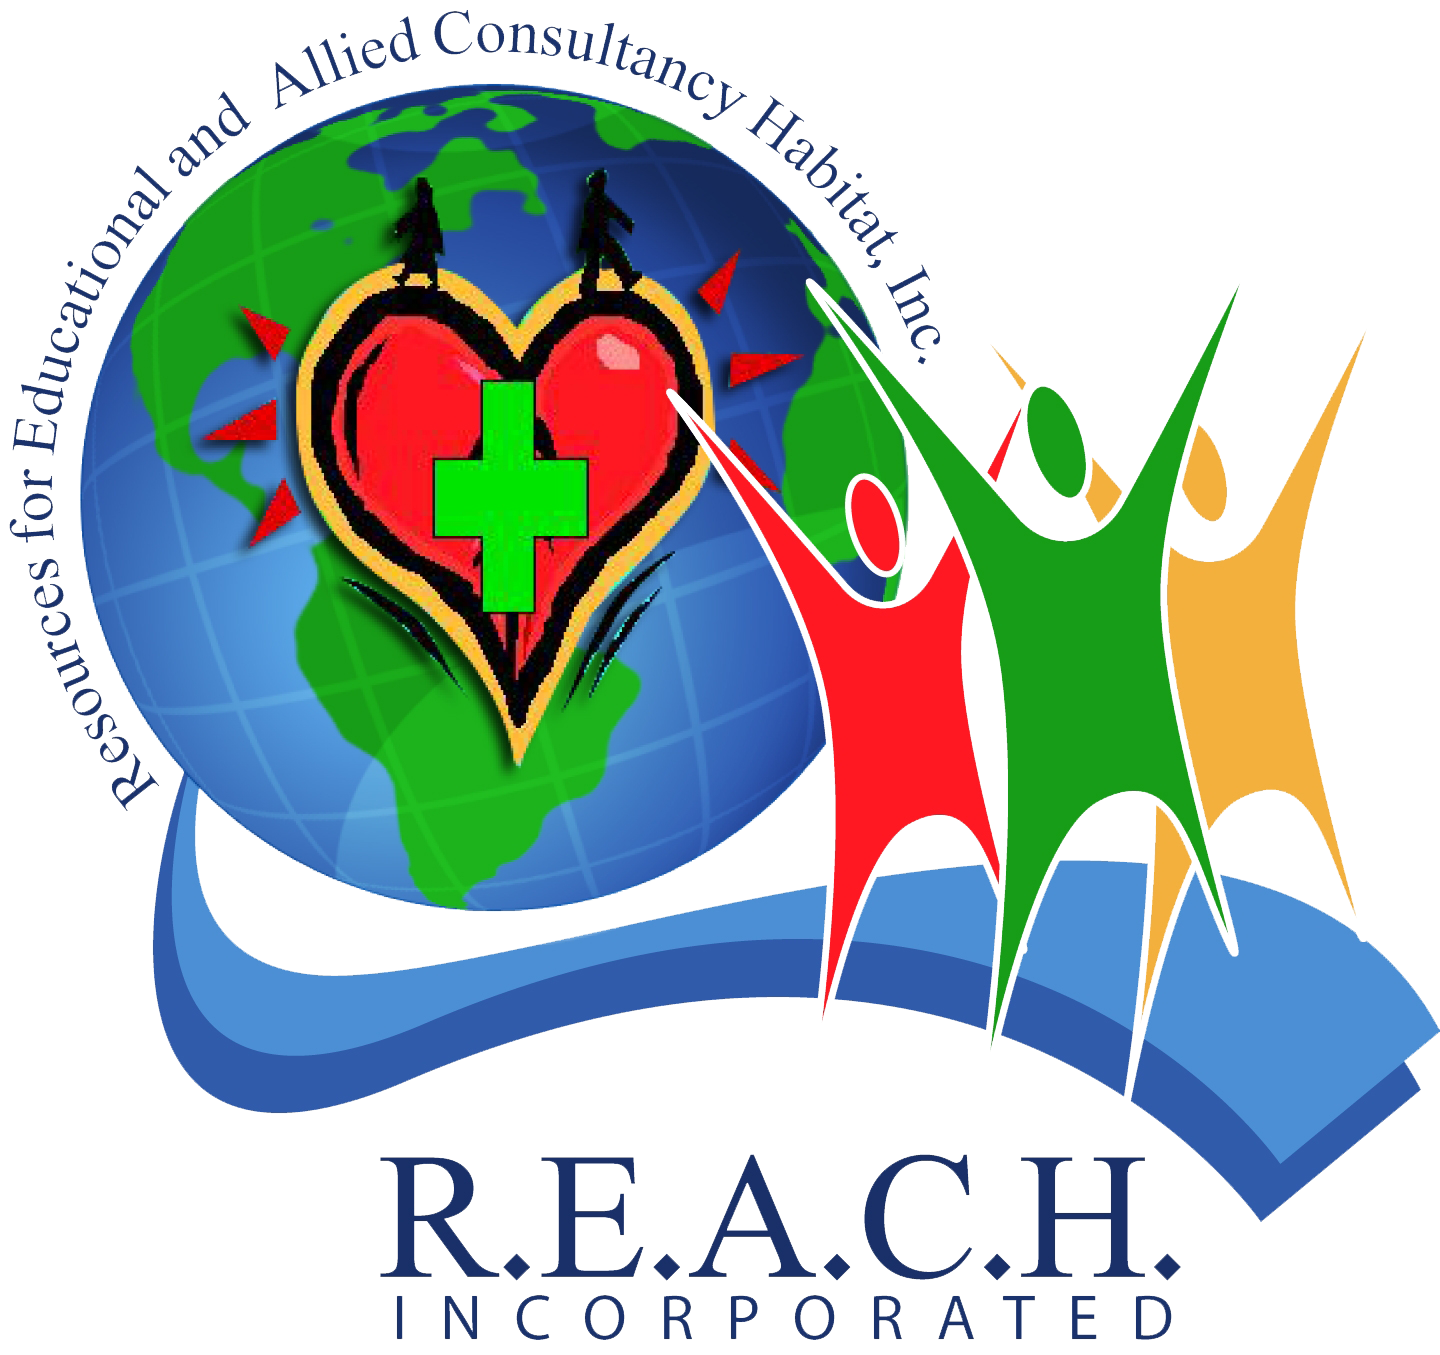 Goal clipart special education. Products and services reach